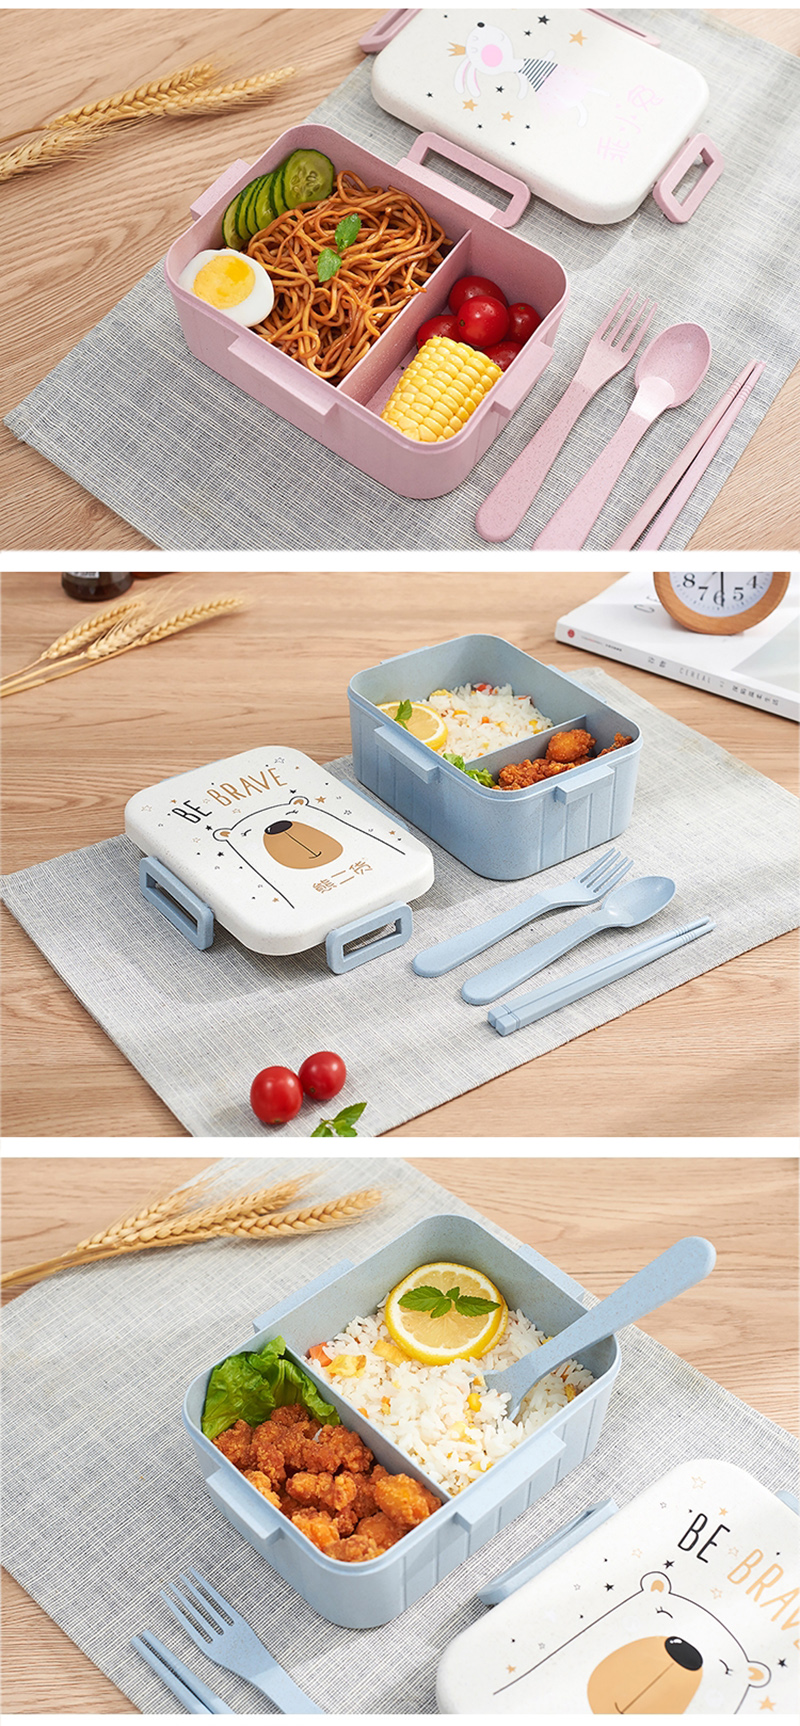 TUUTH Cute Cartoon Lunch Box Microwave Dinnerware Food Storage Container Children Kids School Office Portable Bento Box B1